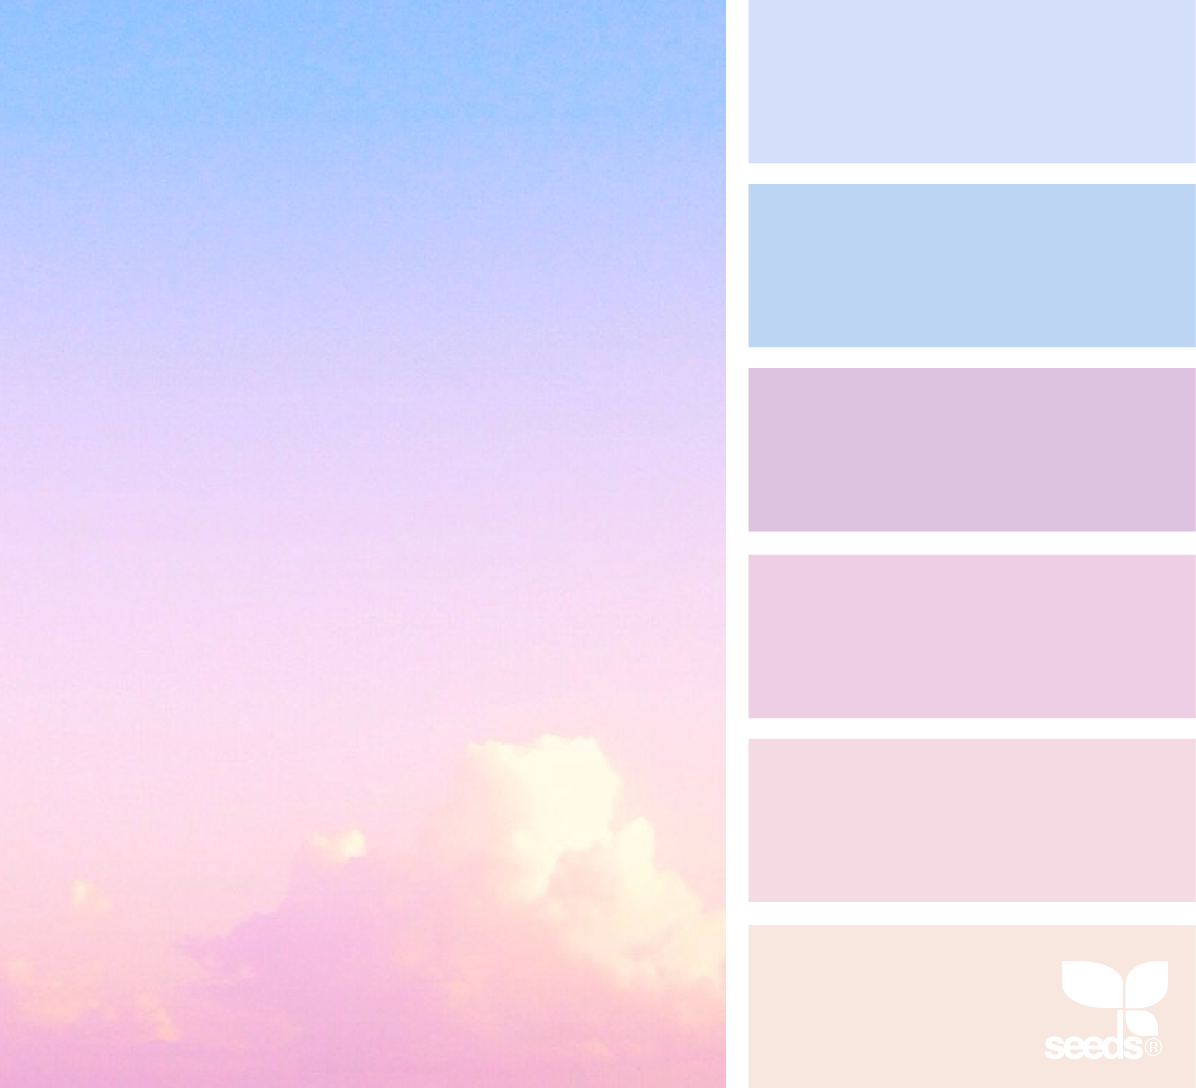 Color Dream Palette Designseeds Seeds Seedscolor Pastel Pink Blue